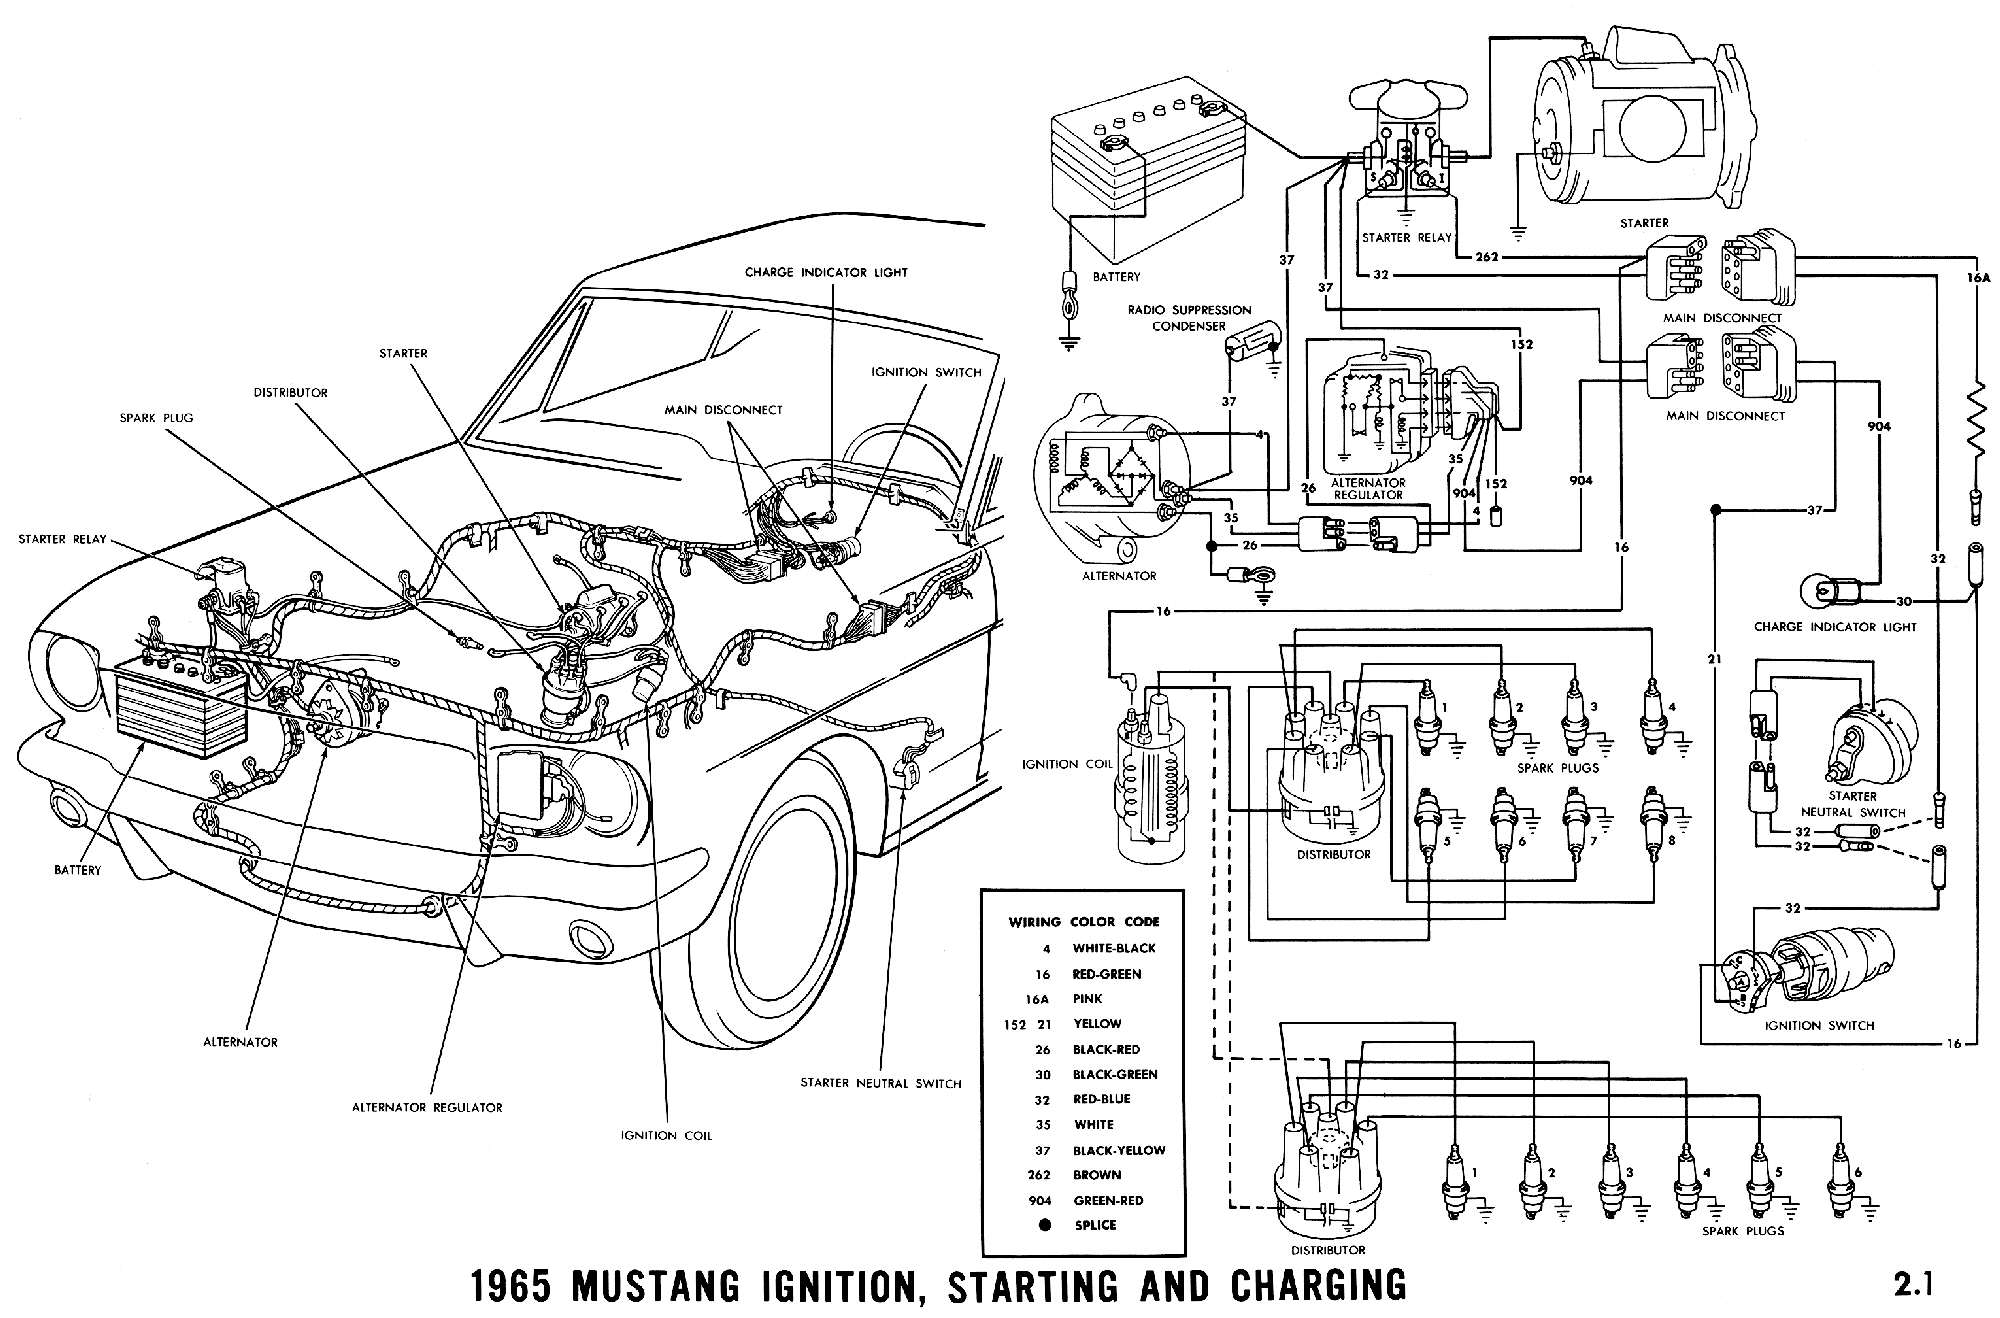 1965c 1965 mustang wiring diagrams average joe restoration 1966 mustang wiring diagrams electrical schematics at nearapp.co